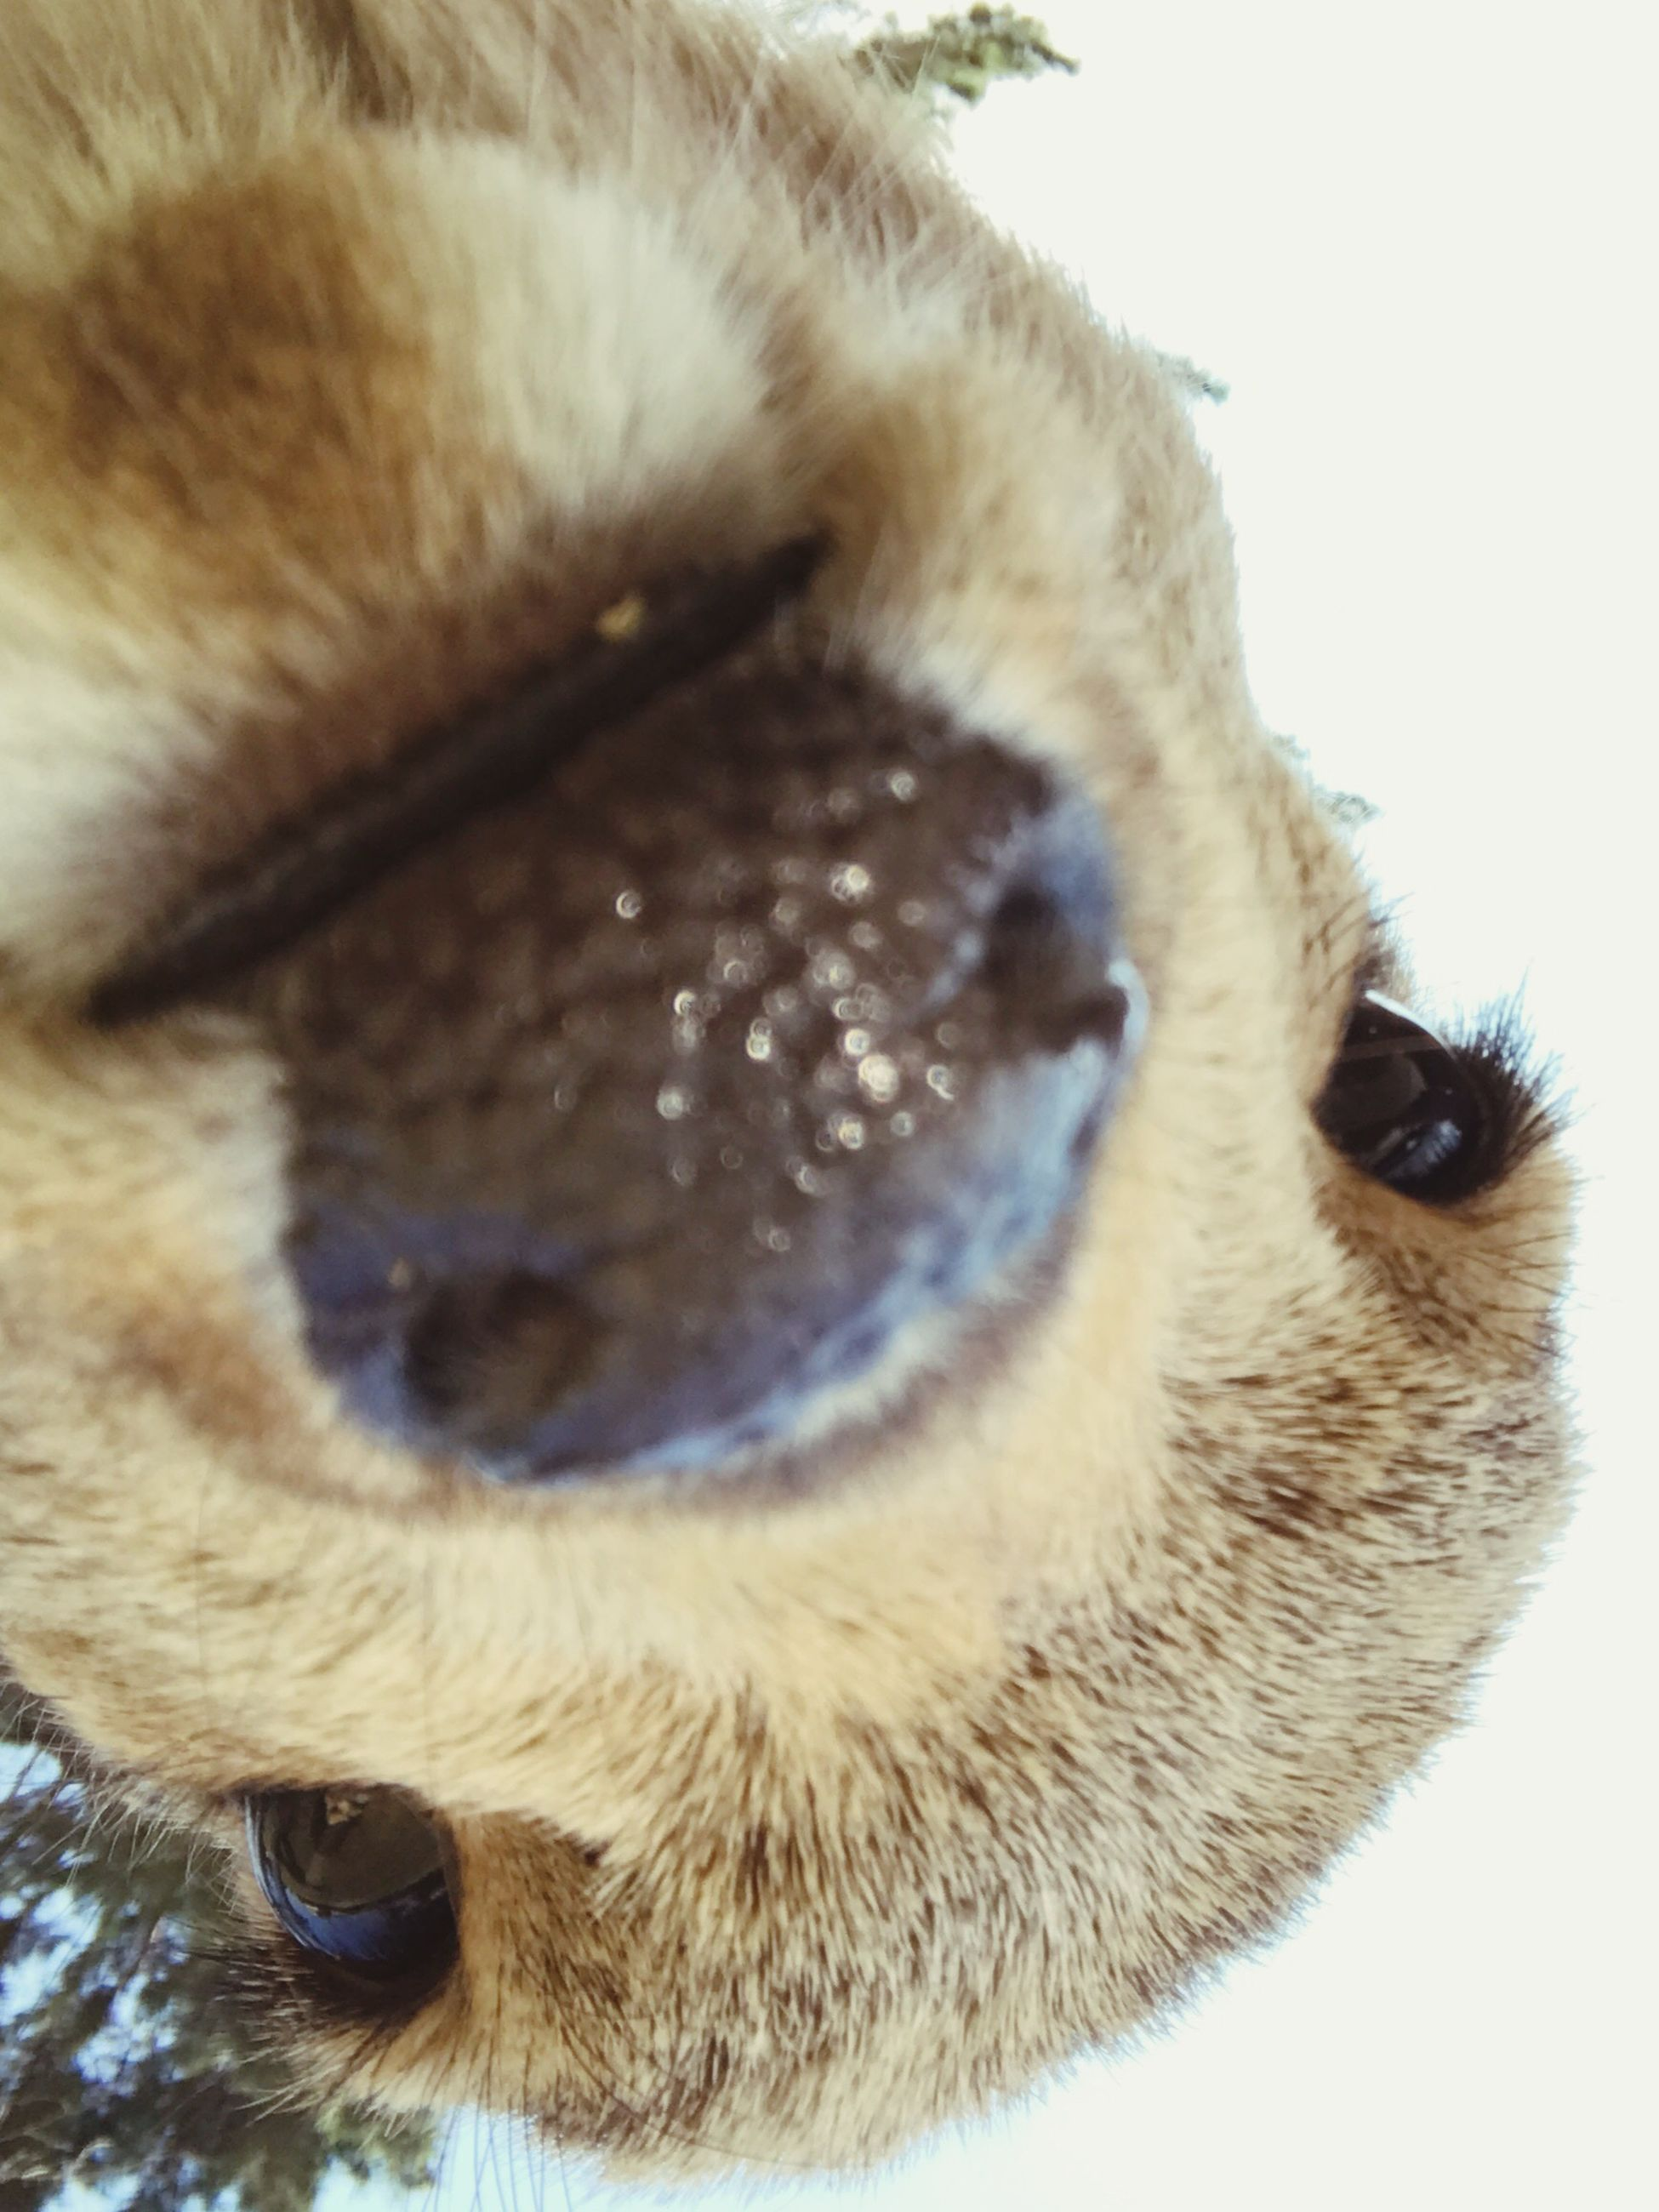 domestic animals, one animal, animal themes, pets, mammal, close-up, no people, dog, day, outdoors